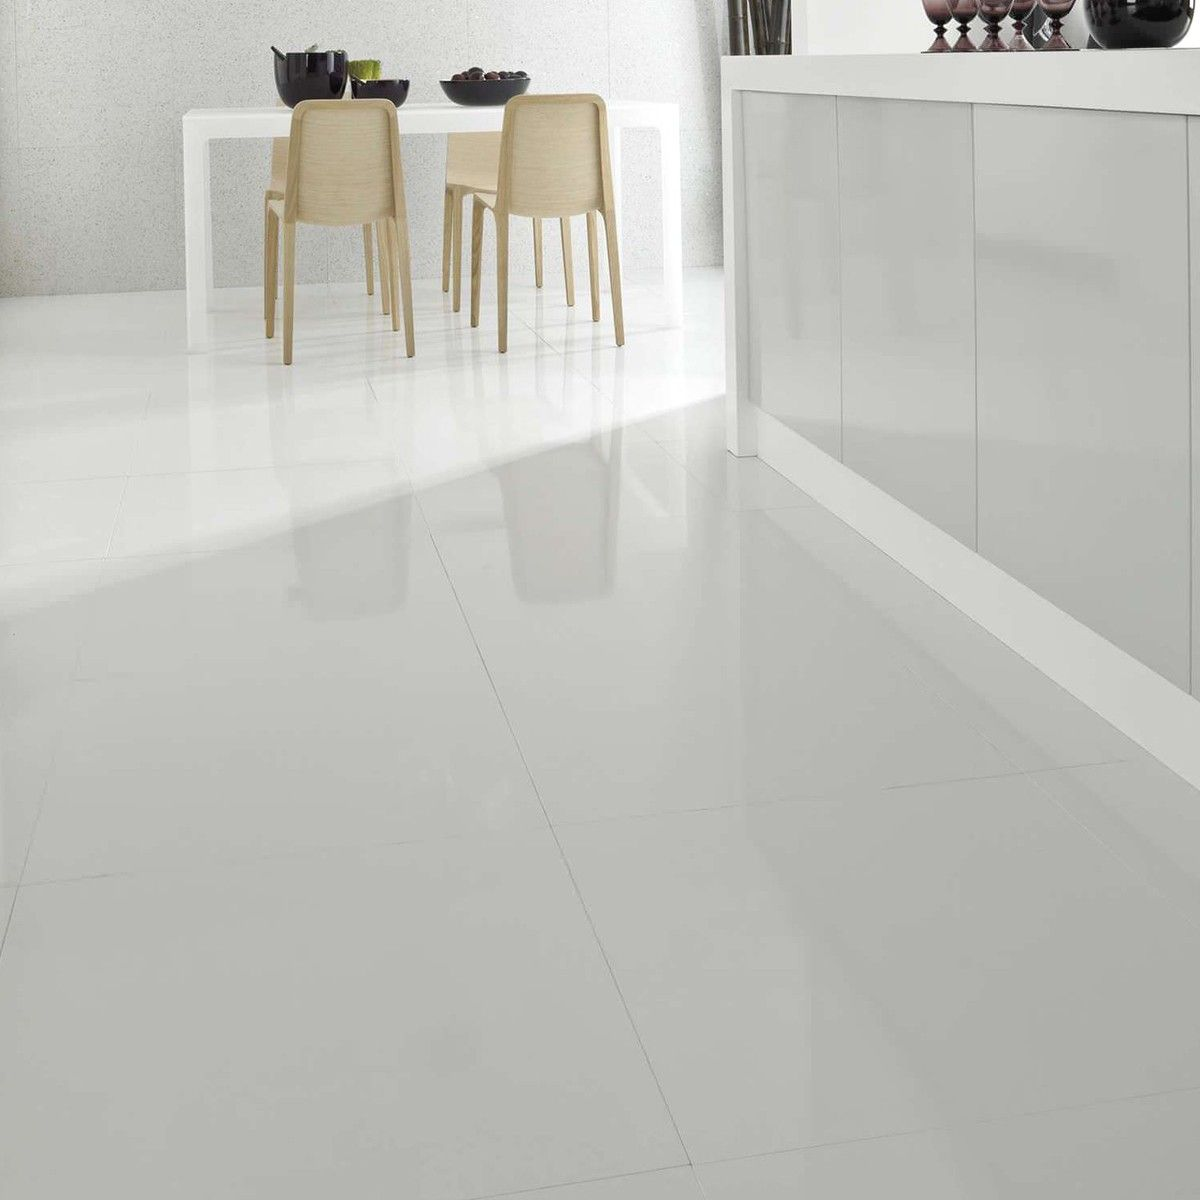 Crown tiles 60x60cm stark white porcelain crown tiles white supreme white polished porcelain floor tiles available now from crown tiles wide choice and lowest prices with fast delivery on large porcelain tiles dailygadgetfo Gallery